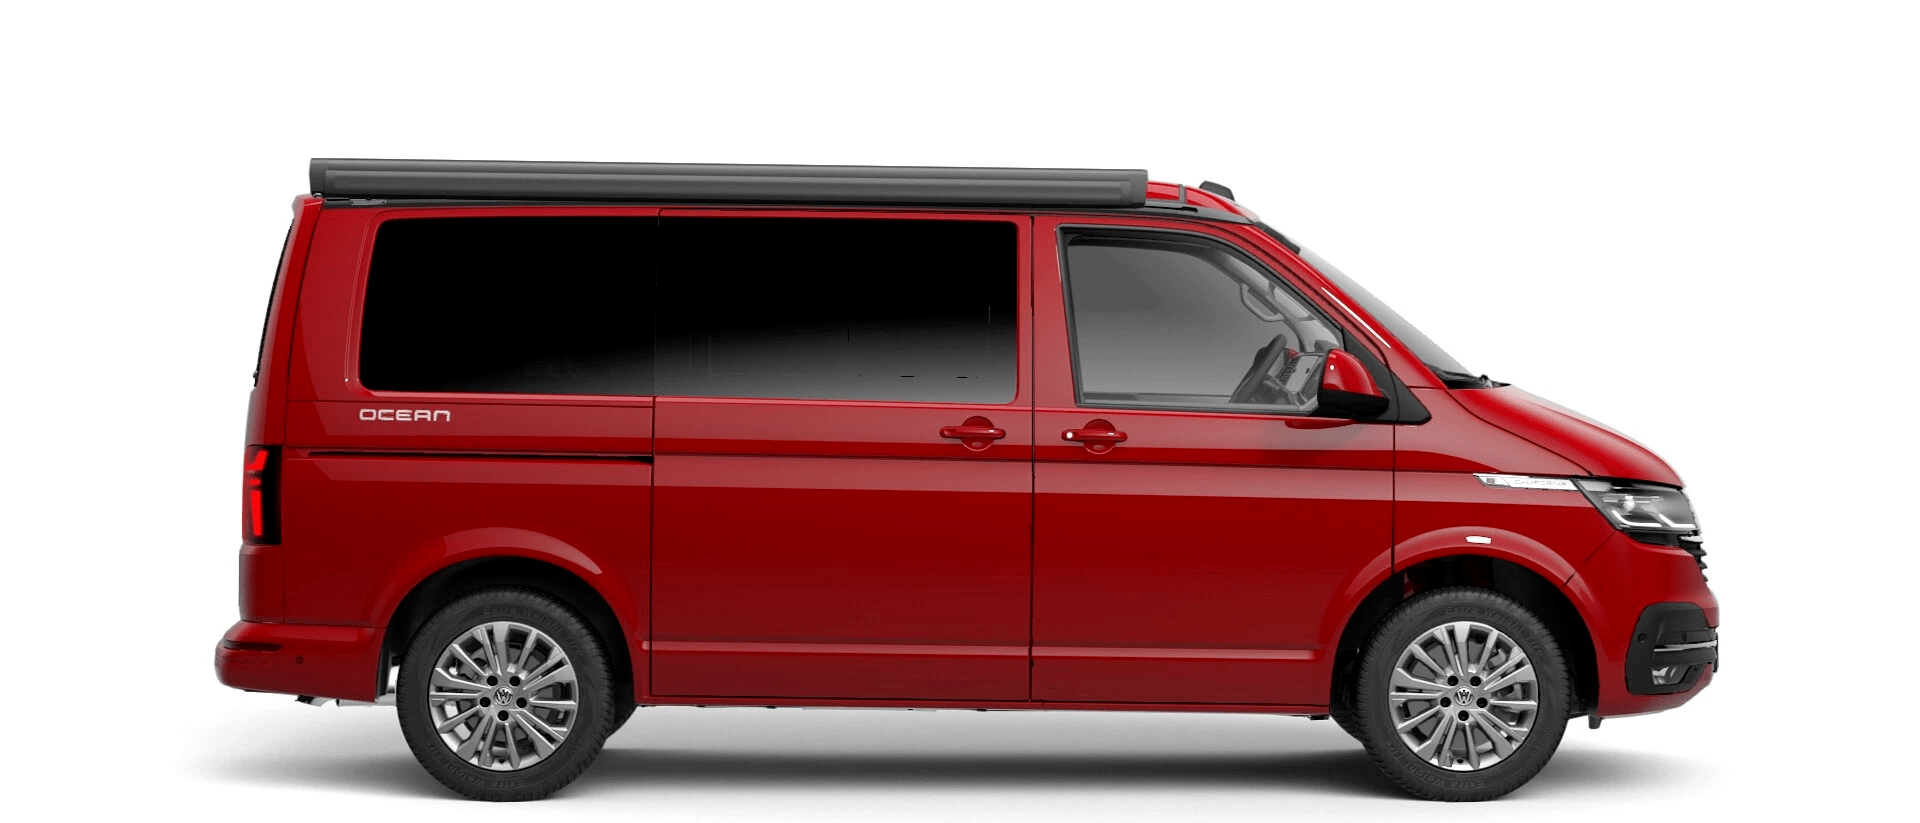 Volkswagen Van Range California - Available In Cherry Red